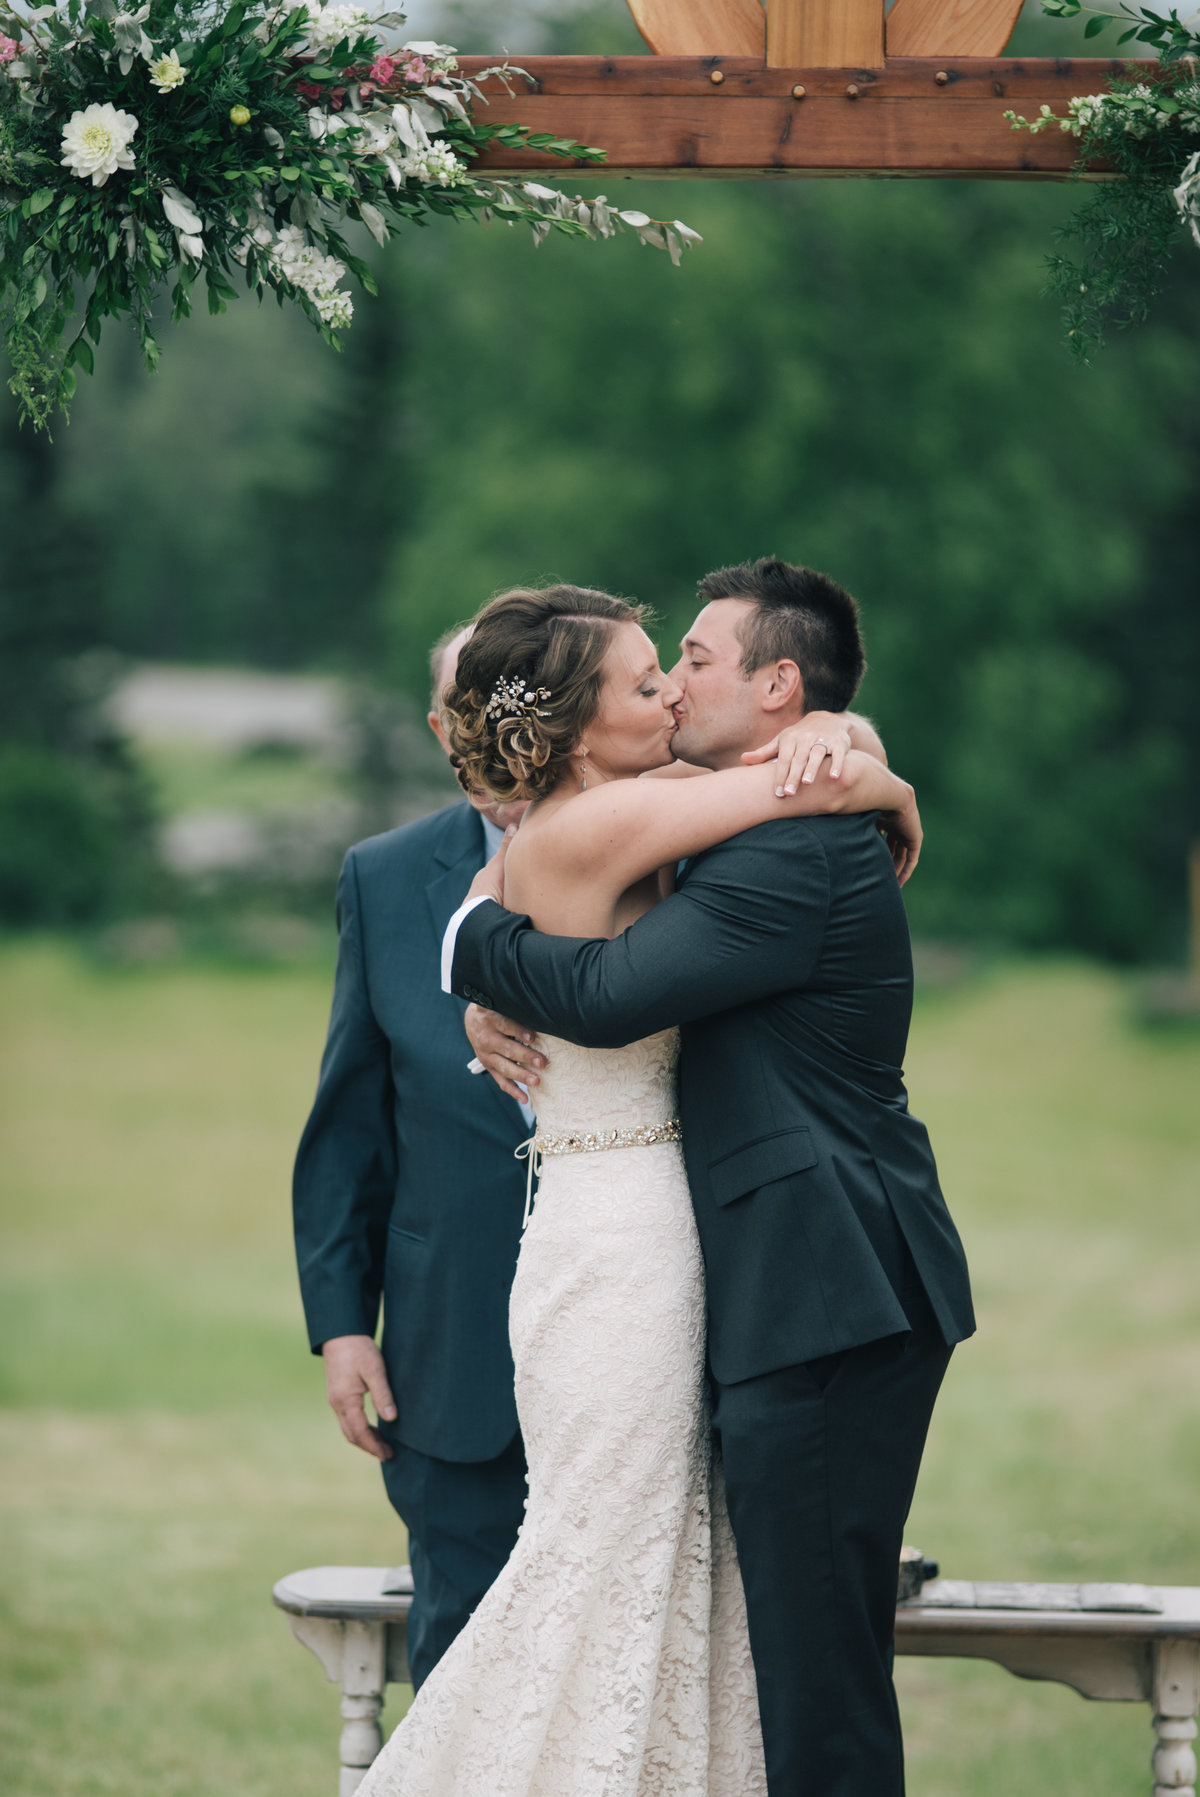 070_Erica Rose Photography_Anchorage Wedding Photographer_Jordan&Austin